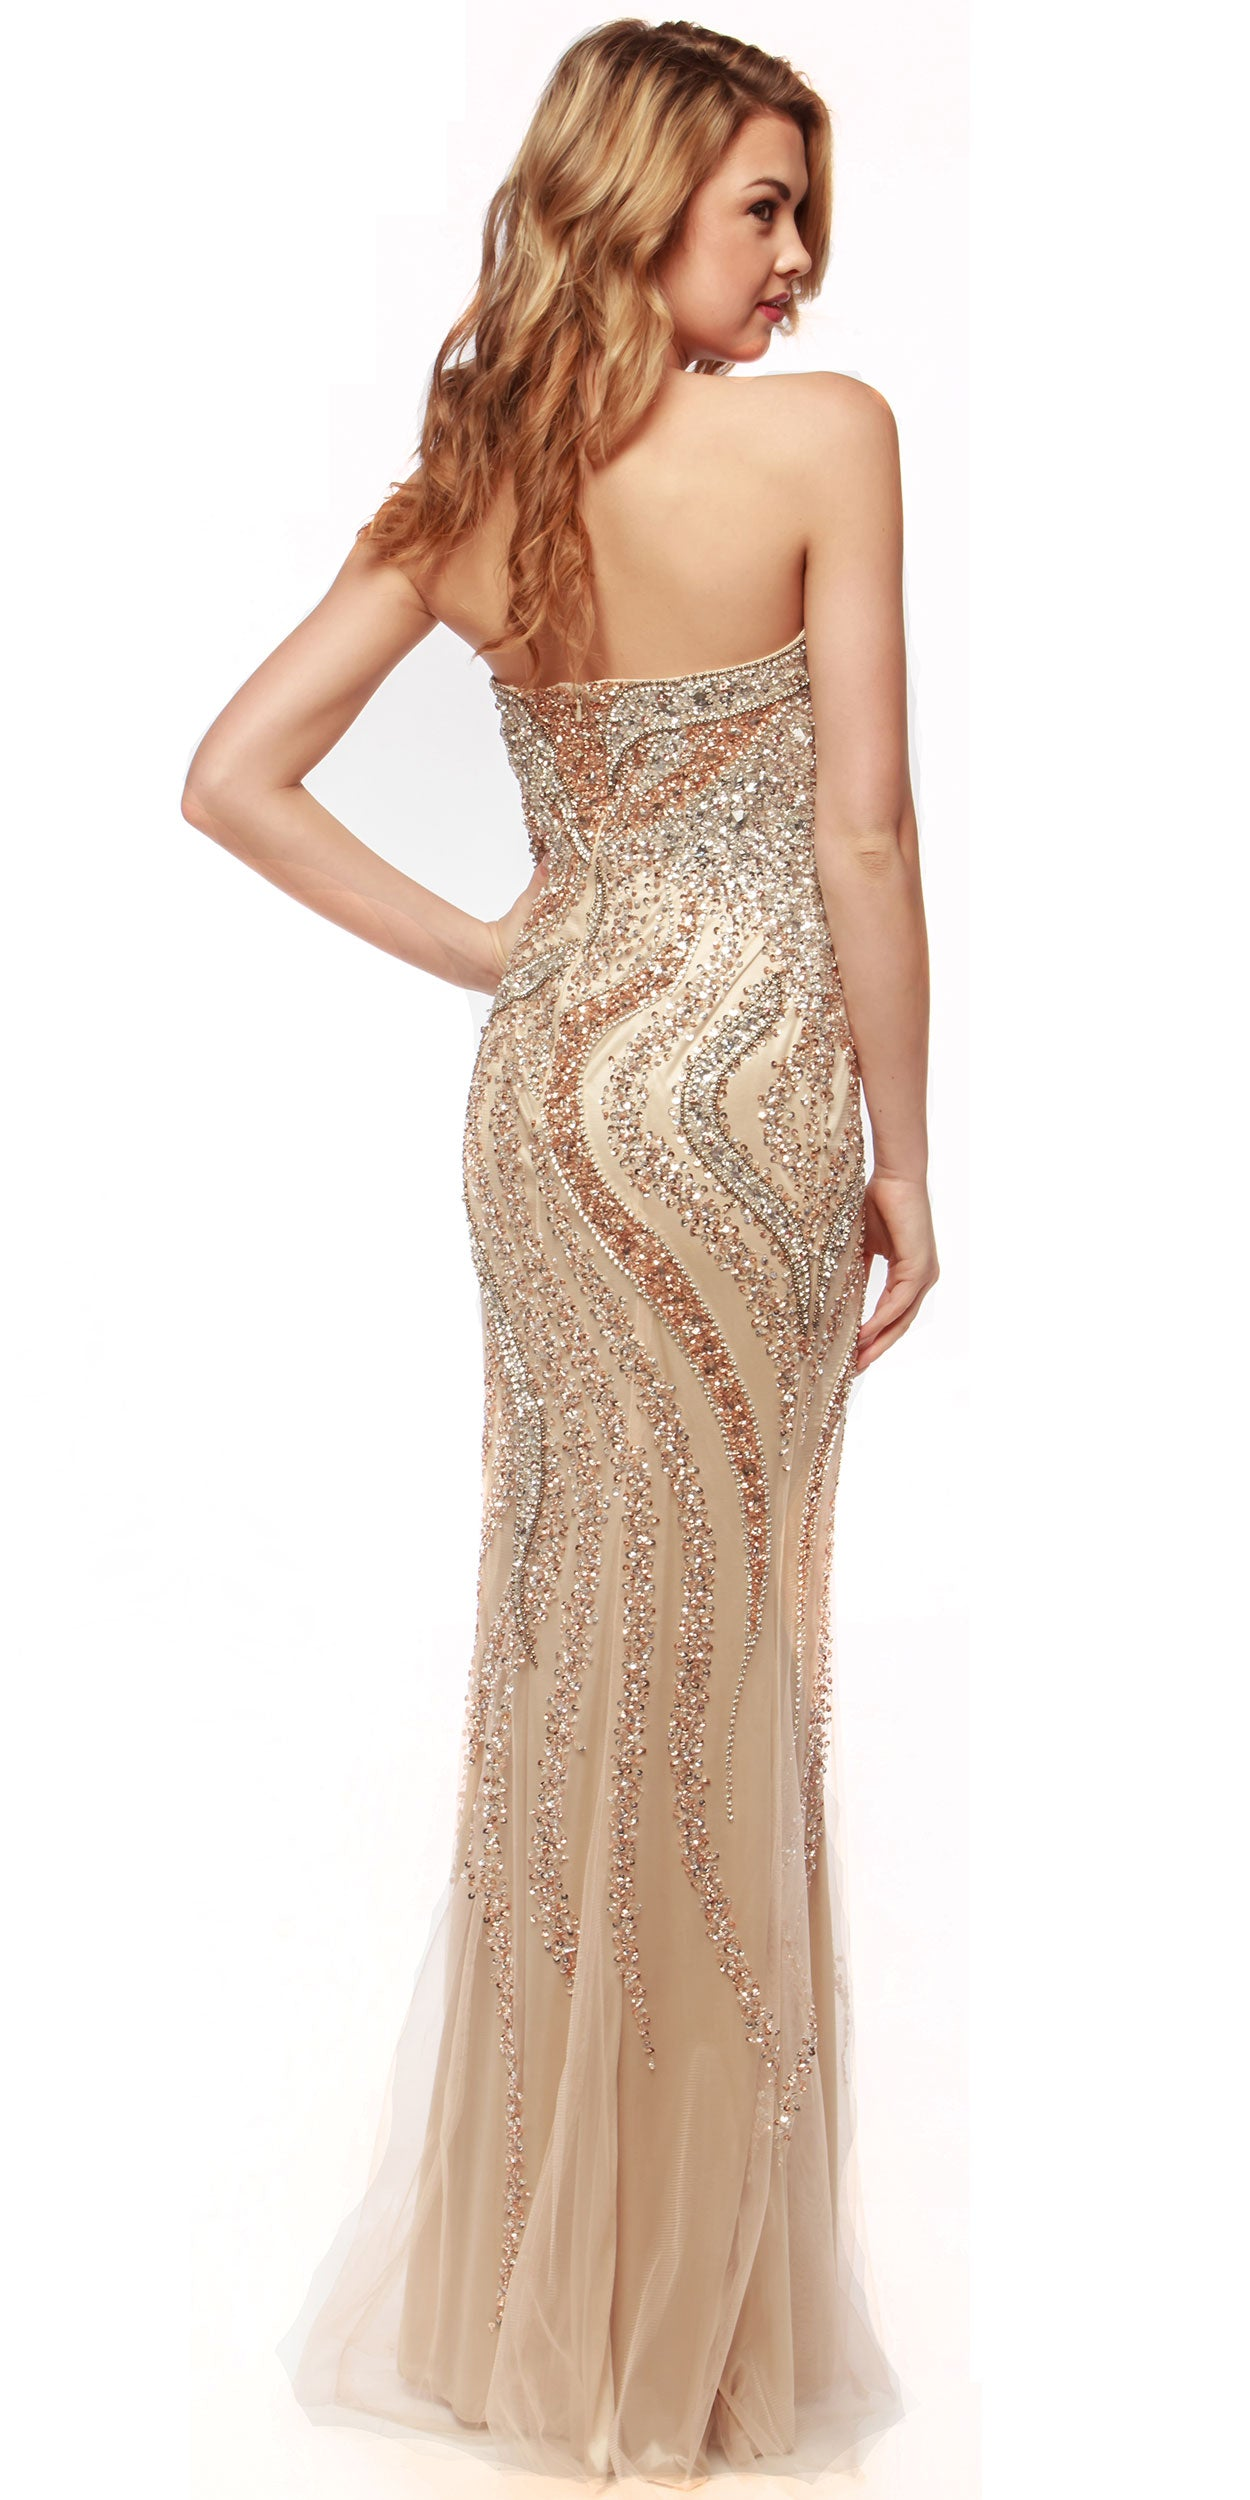 Image of Strapless Bejeweled Bodice Mesh Long Formal Prom Dress back in Champaign